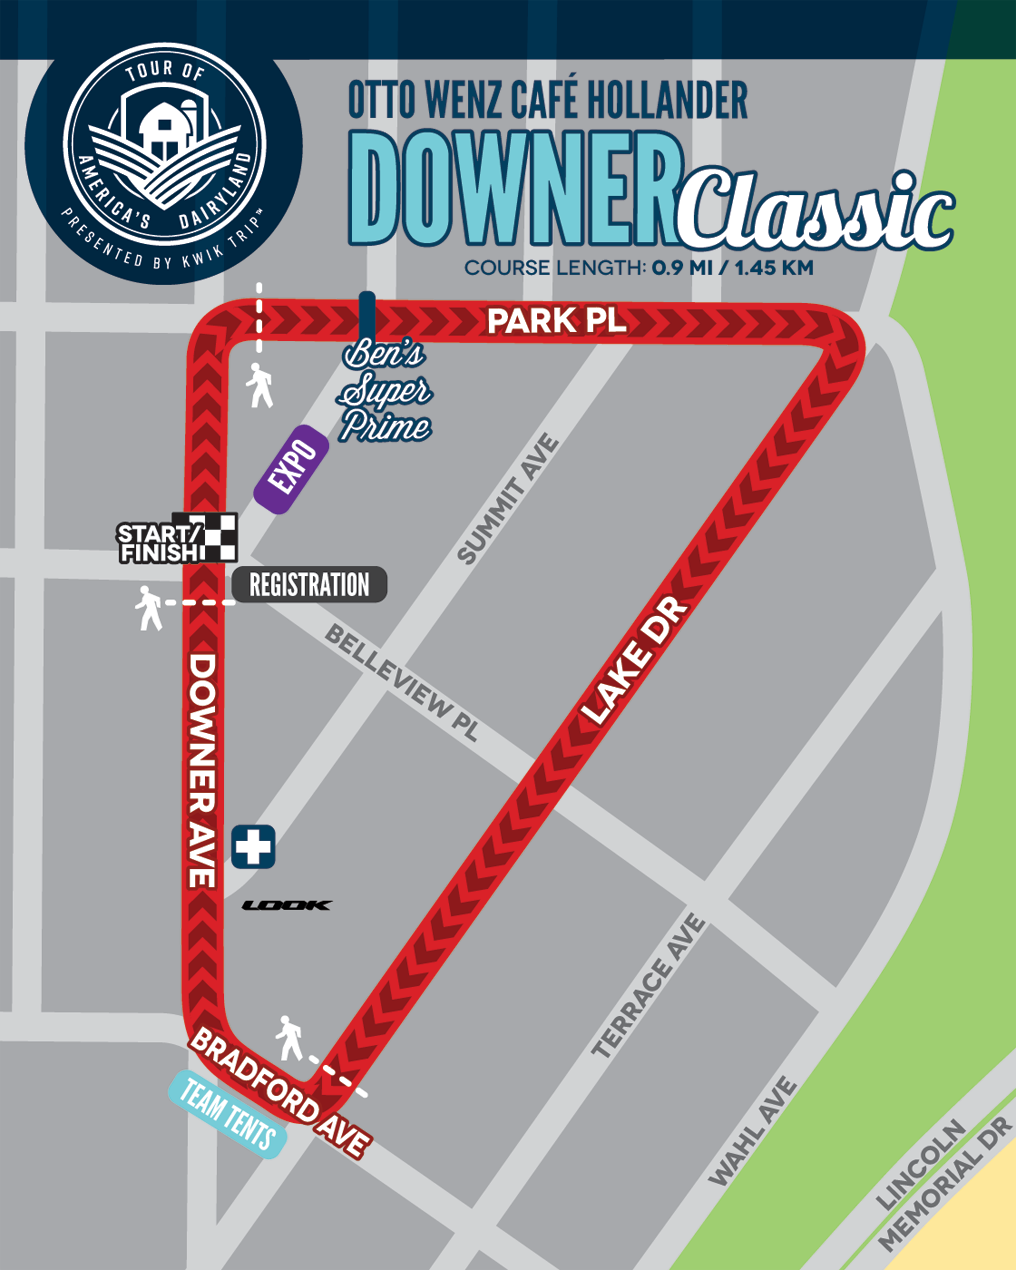 Downer Classic Race Map